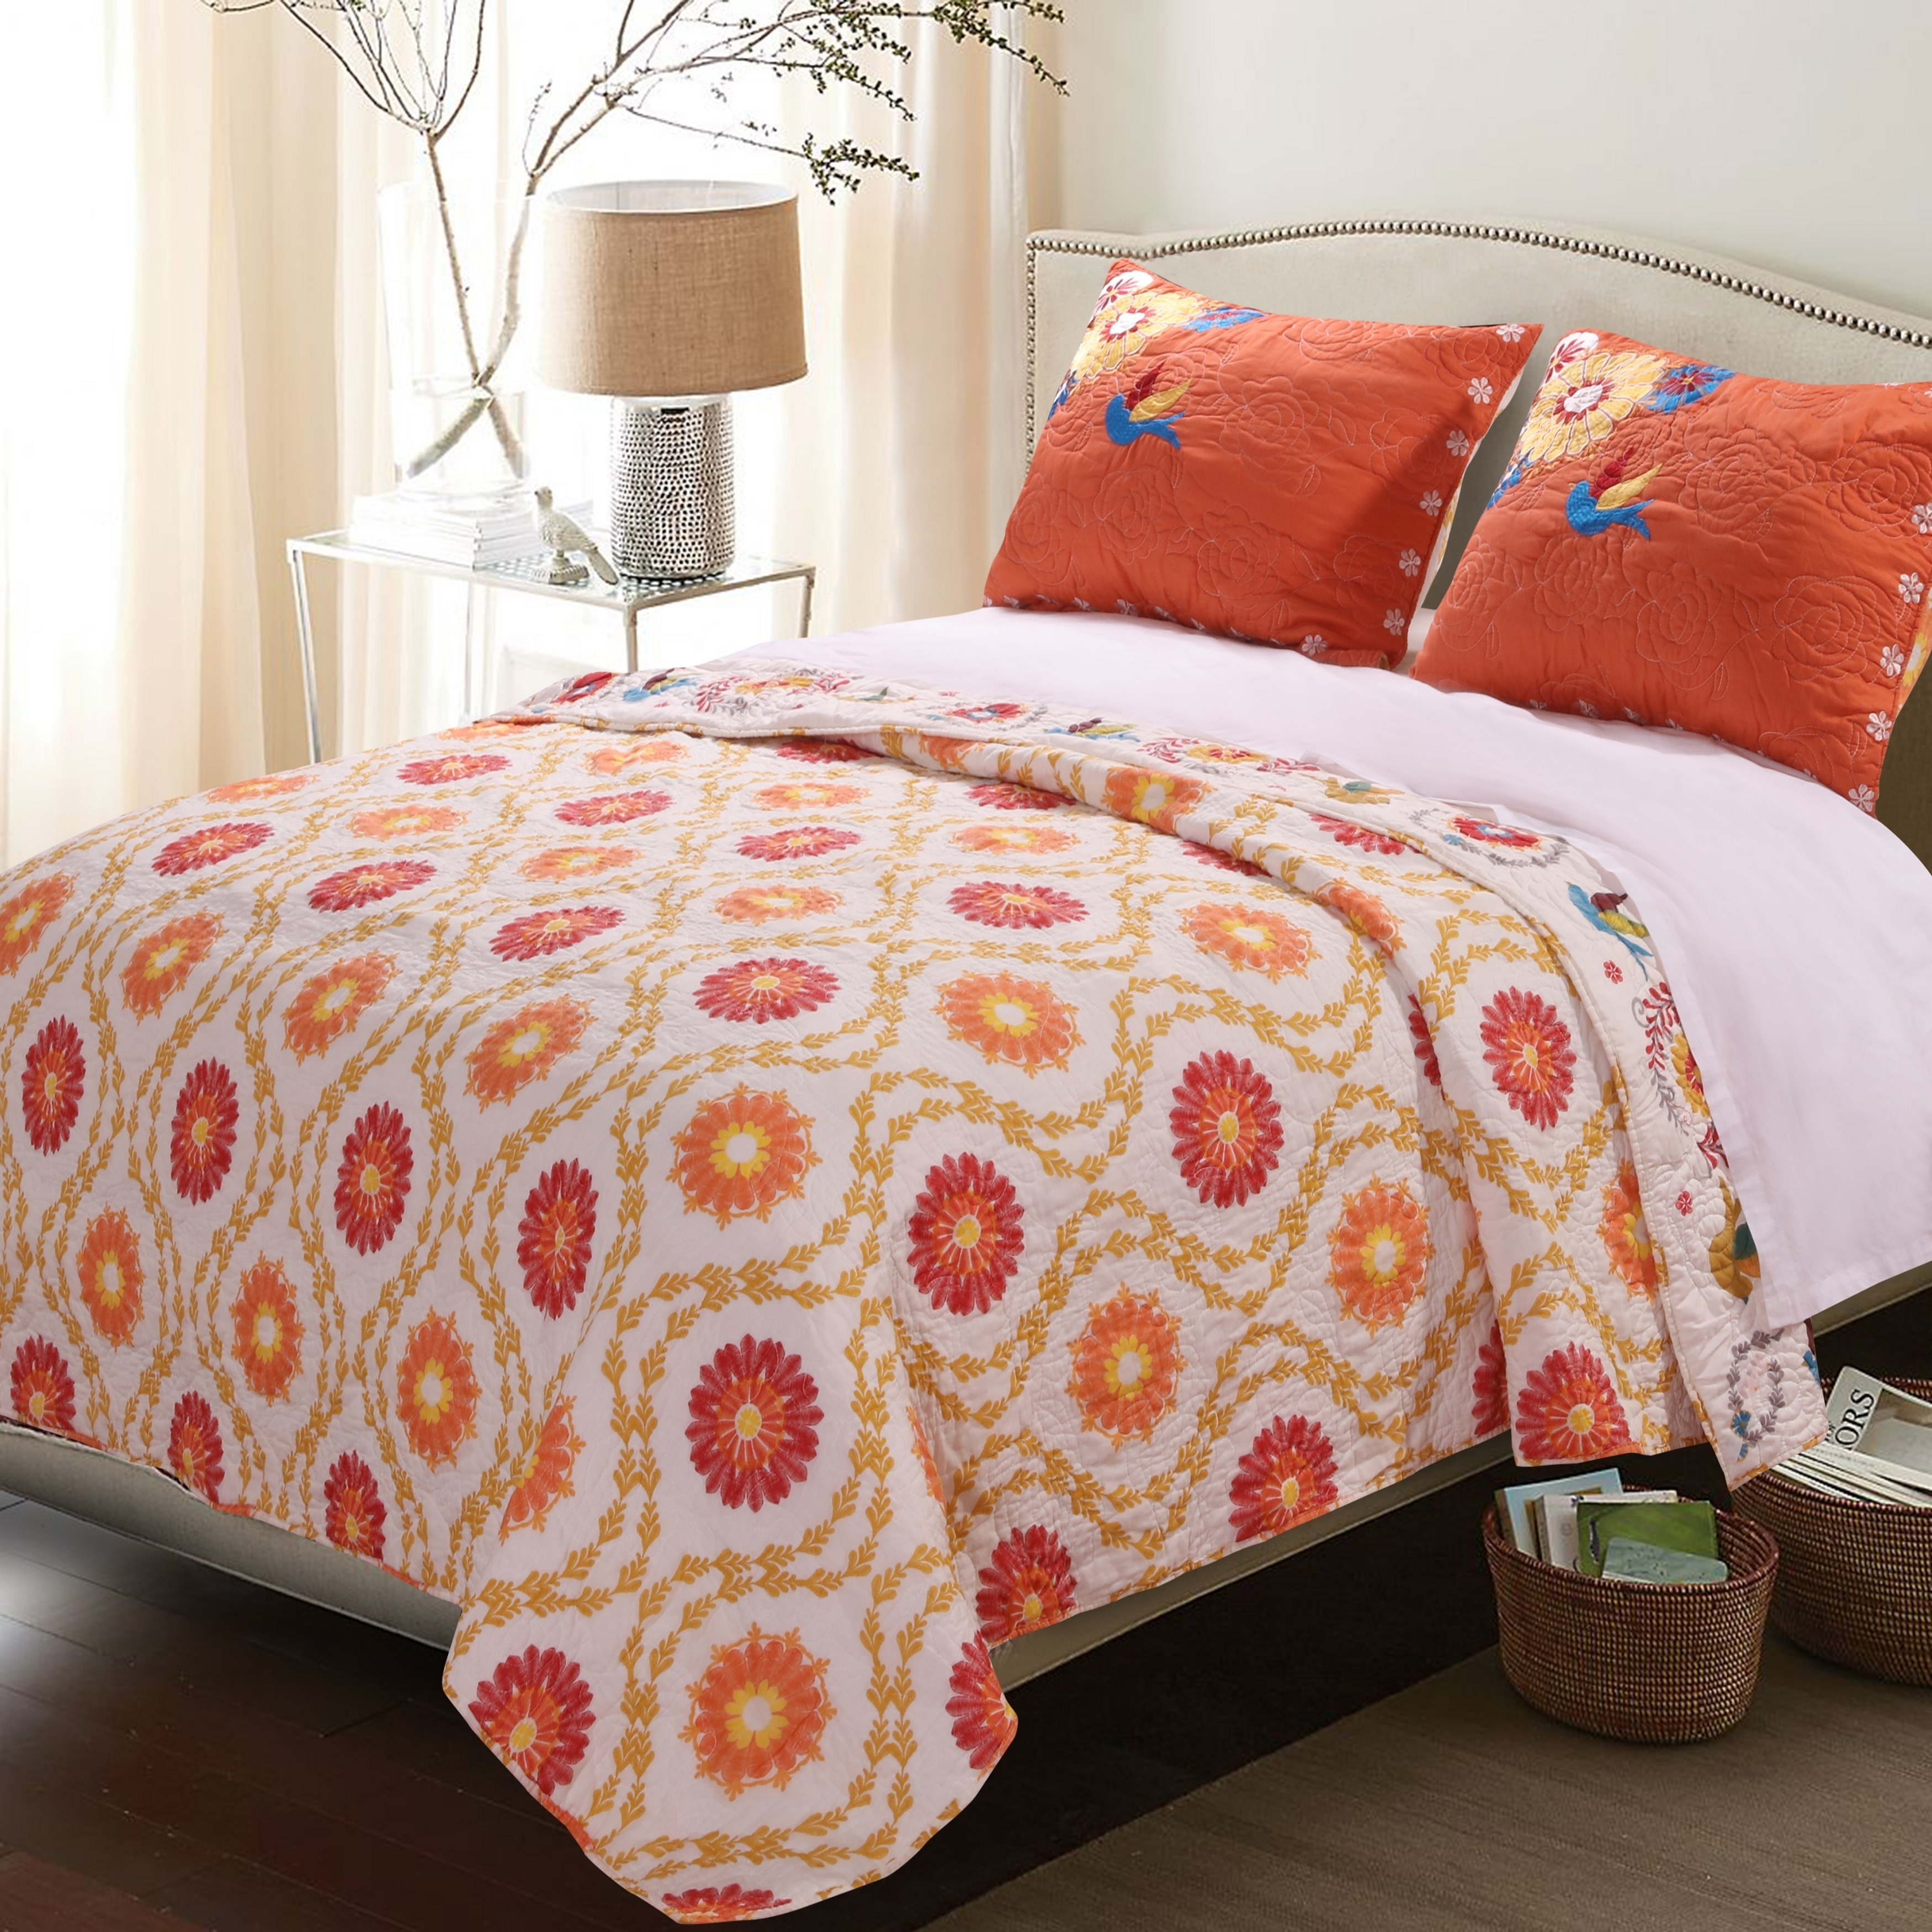 comforter full colorful queen quilts set ethnic quilt comforterbright boho of sets with amazon singularorful photos bright singular design teenl bedding bohemian lelva size style com